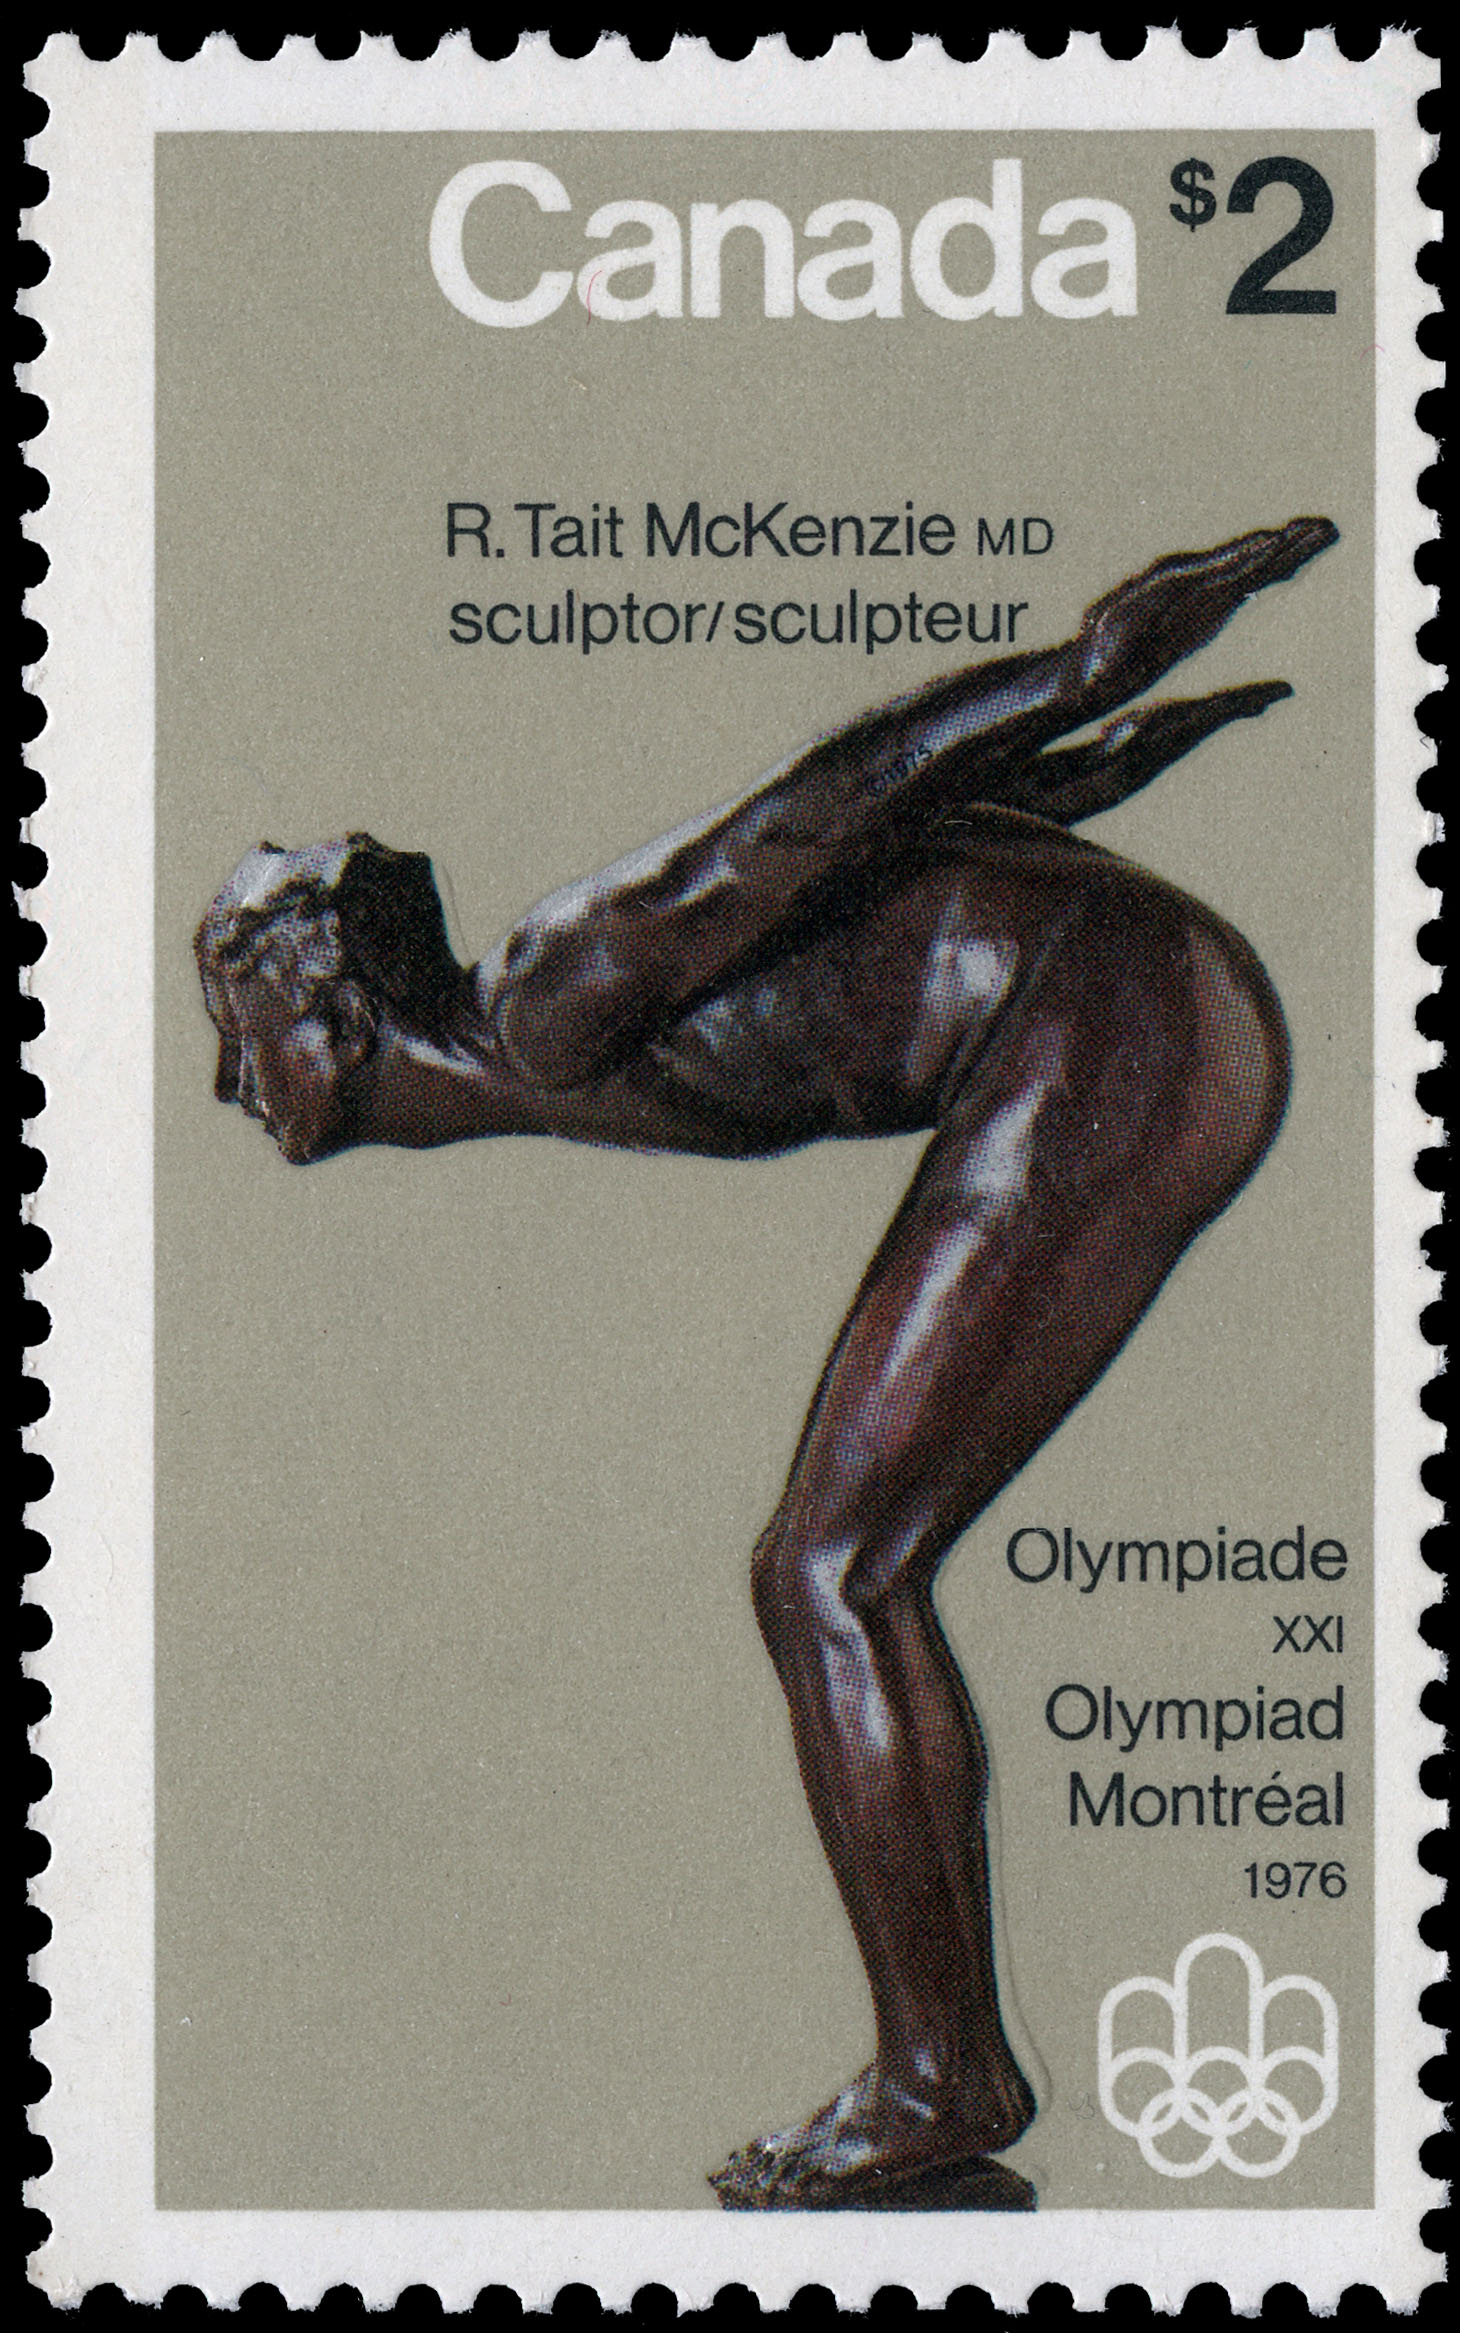 The Plunger Canada Postage Stamp | 1976 Olympic Games, Sculptures